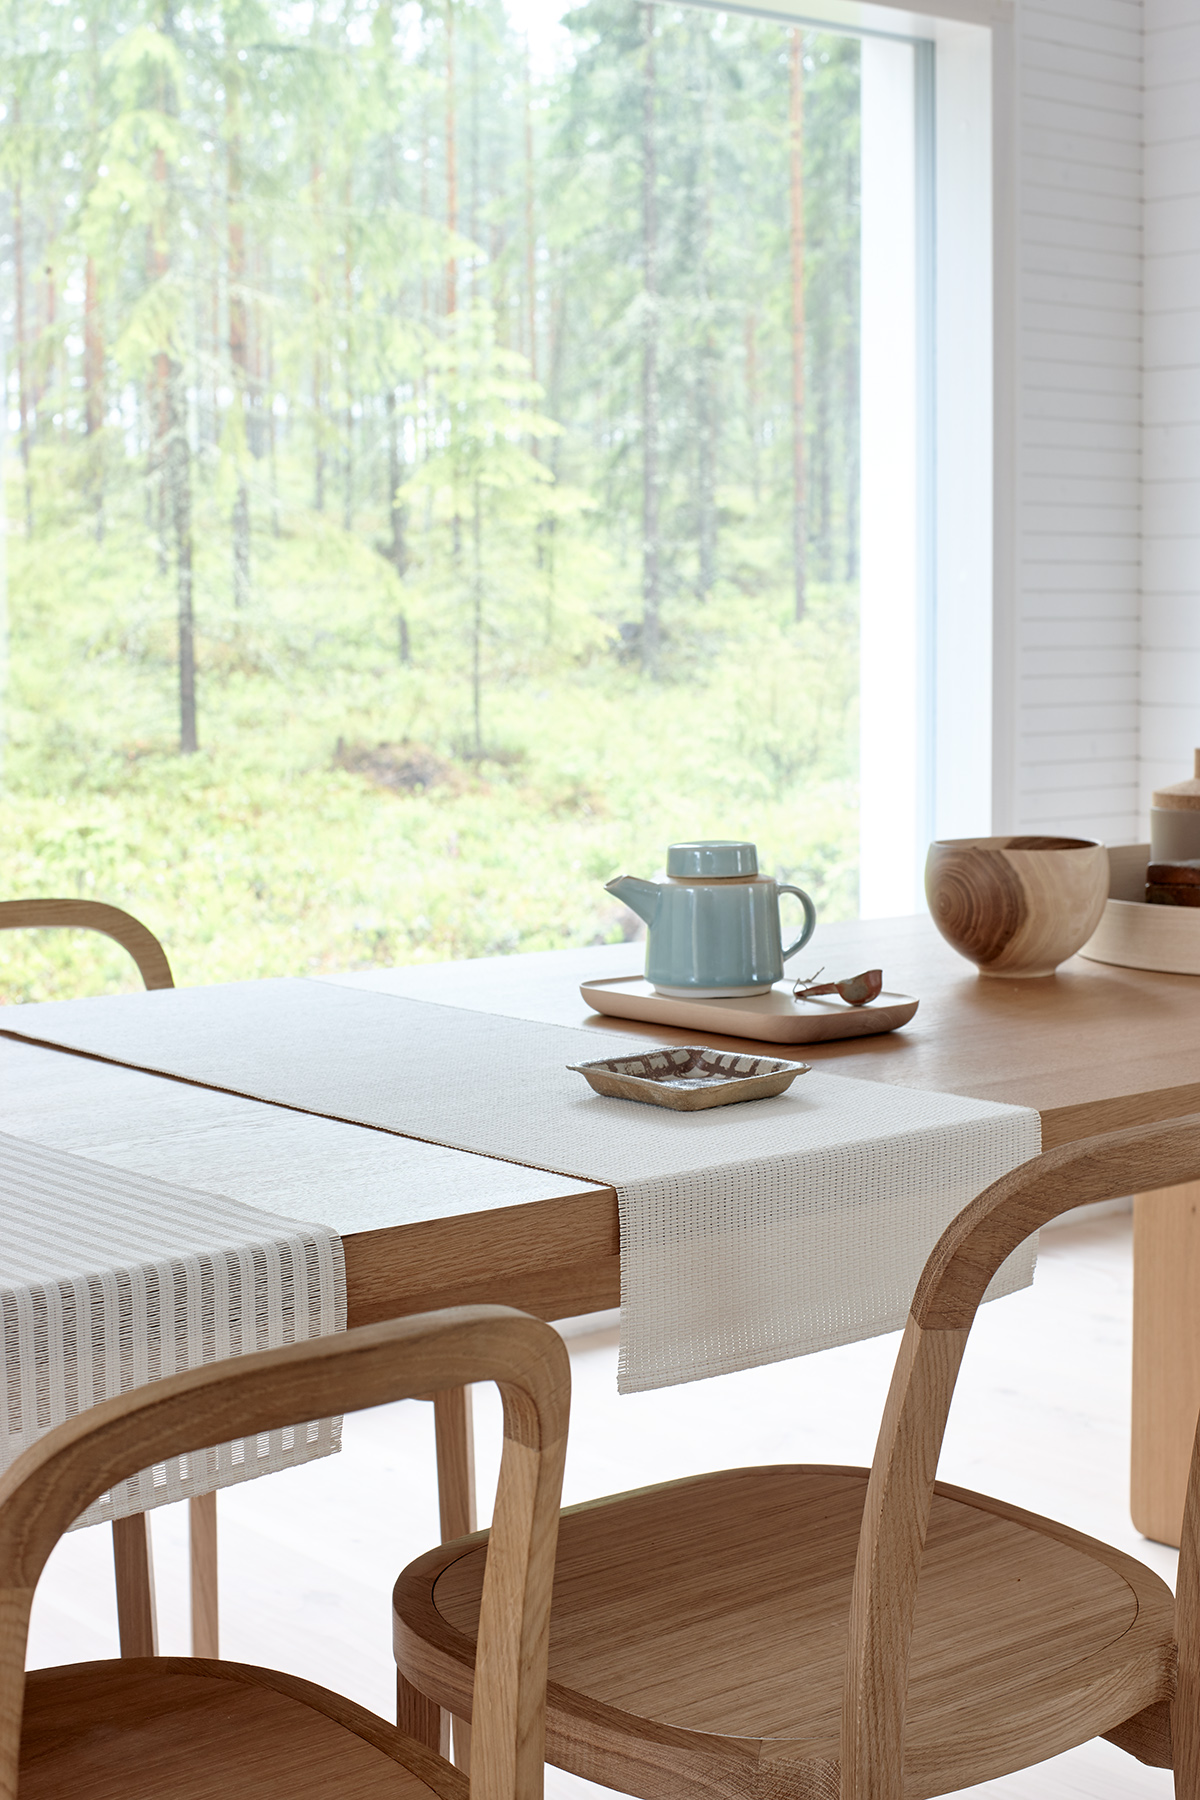 Table runners and 4400  Siro+  oak chairs